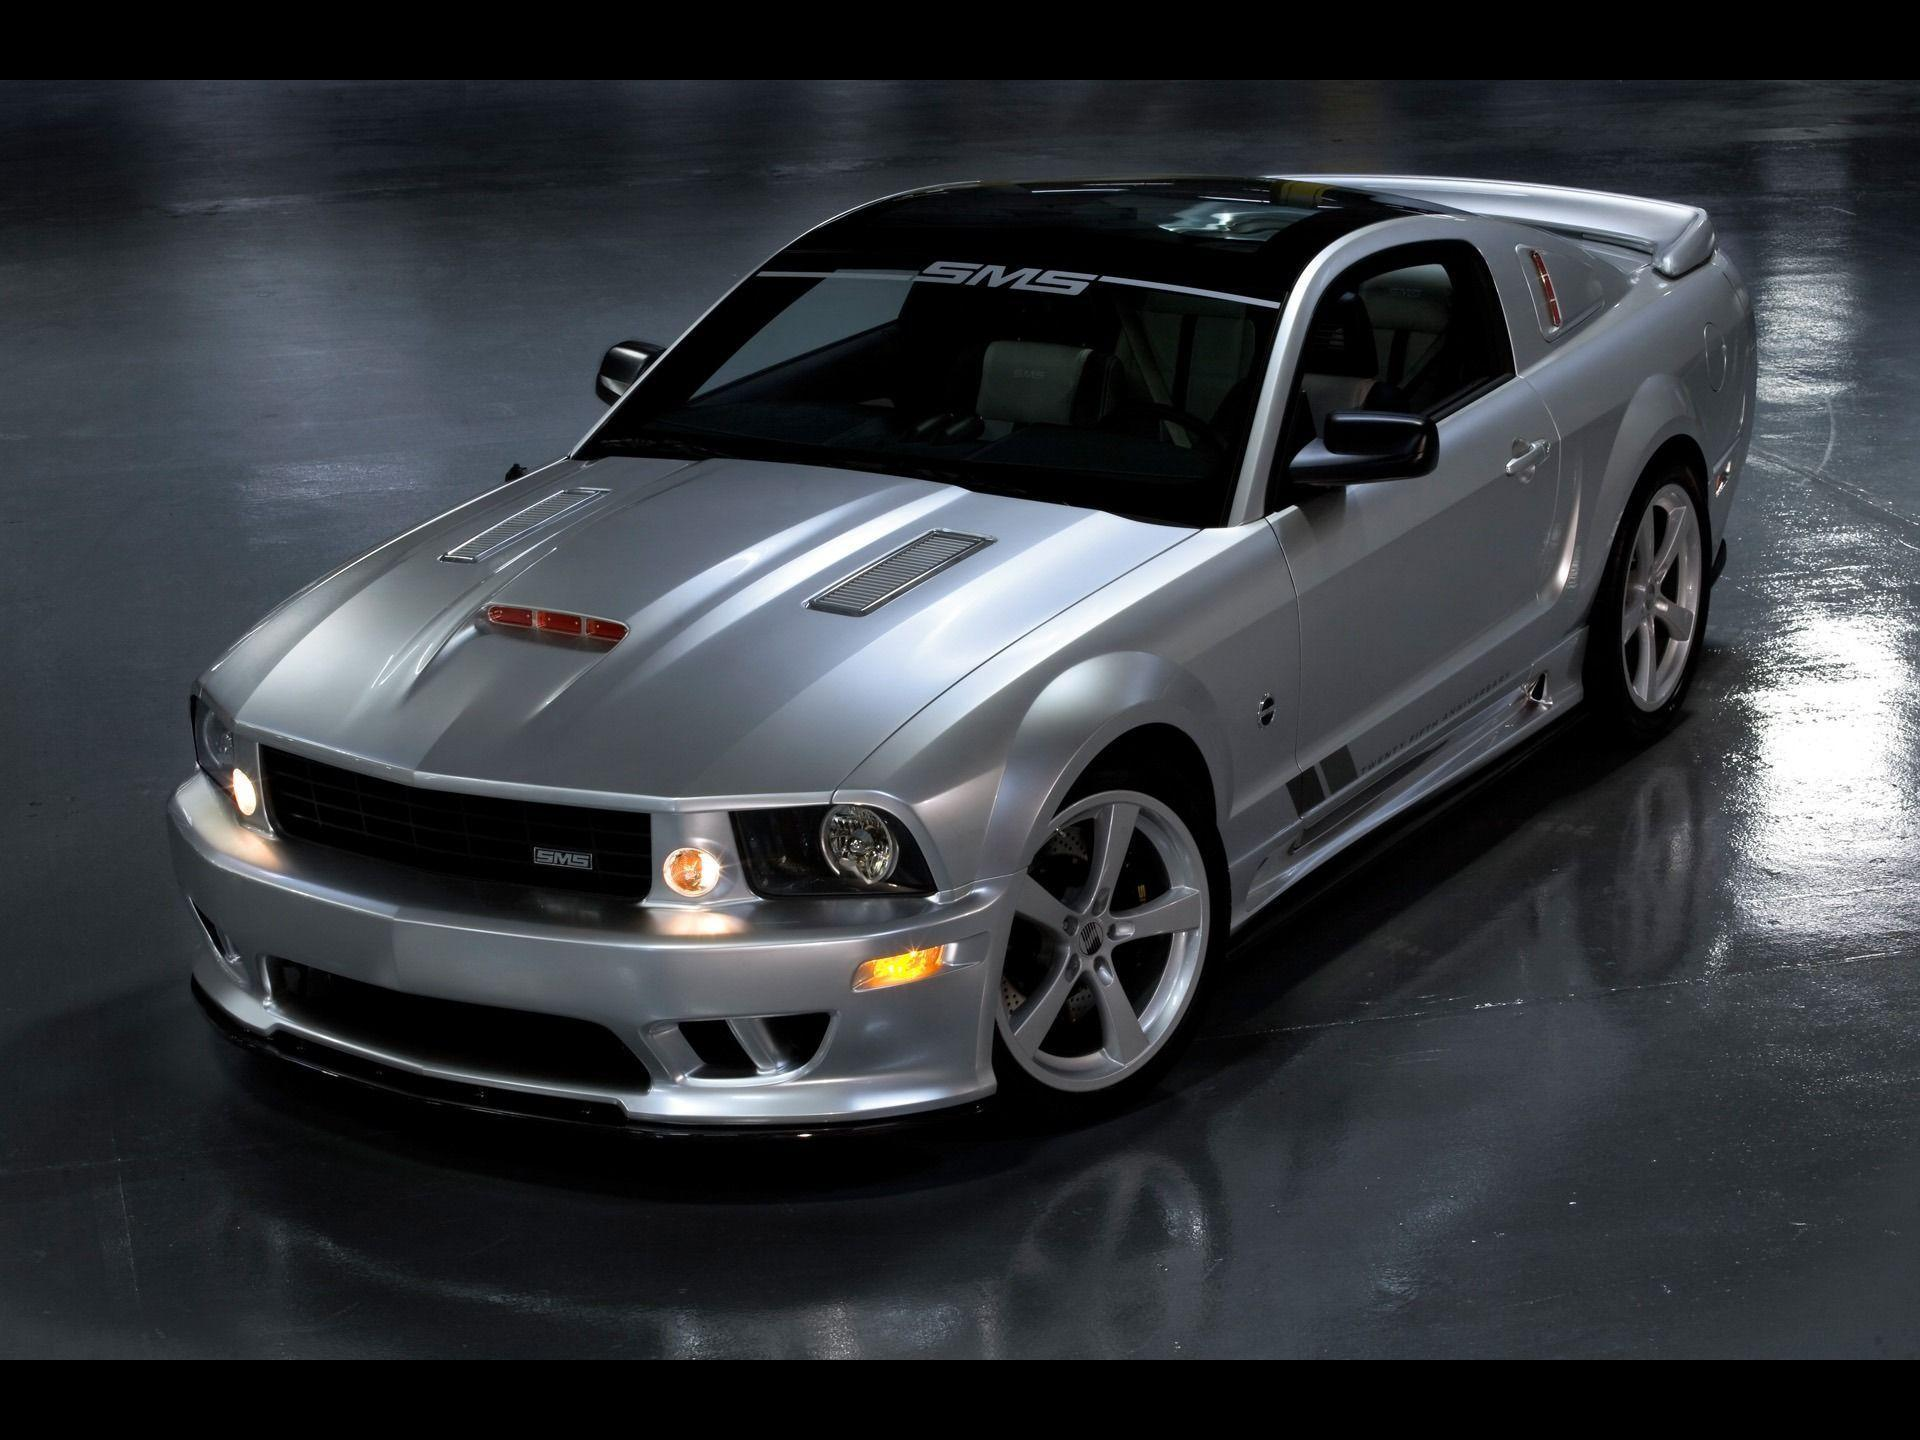 Car Wallpaper Ford Mustang Wallpapers For Free Download About